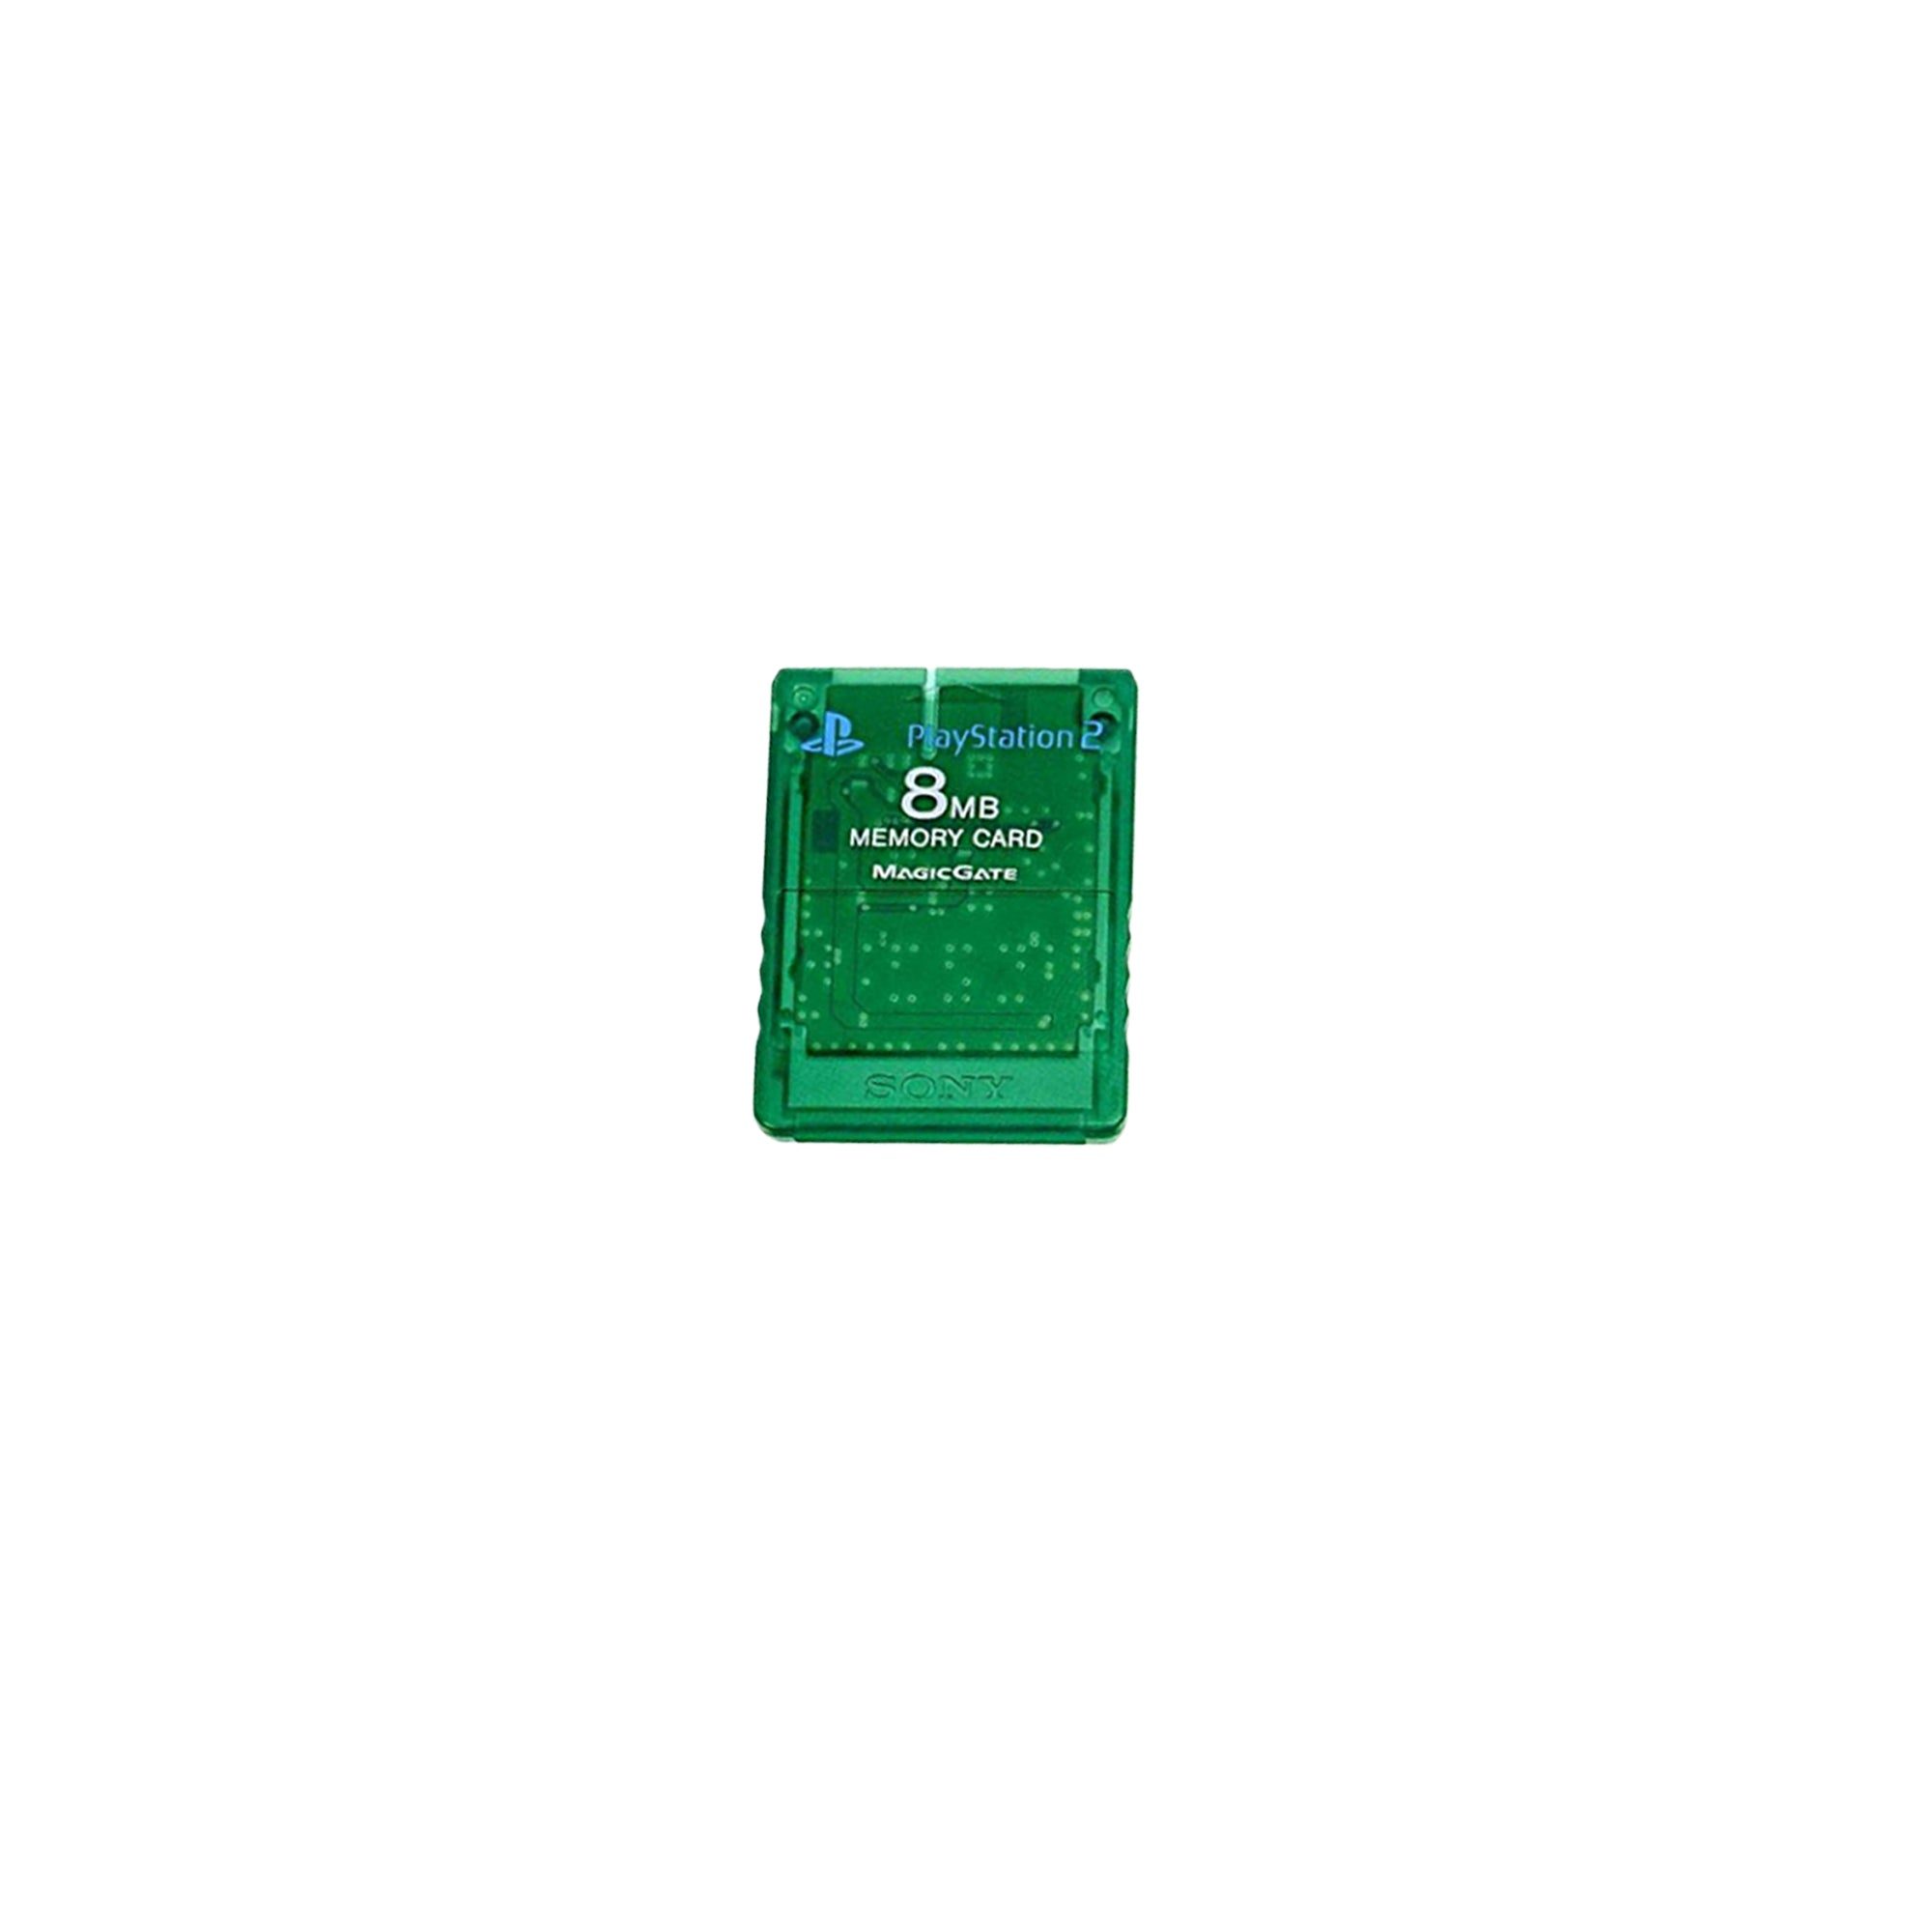 miniature 15 - Sony Playstation 2 Official Memory Card 8MB OEM PS2 Multiple Colors